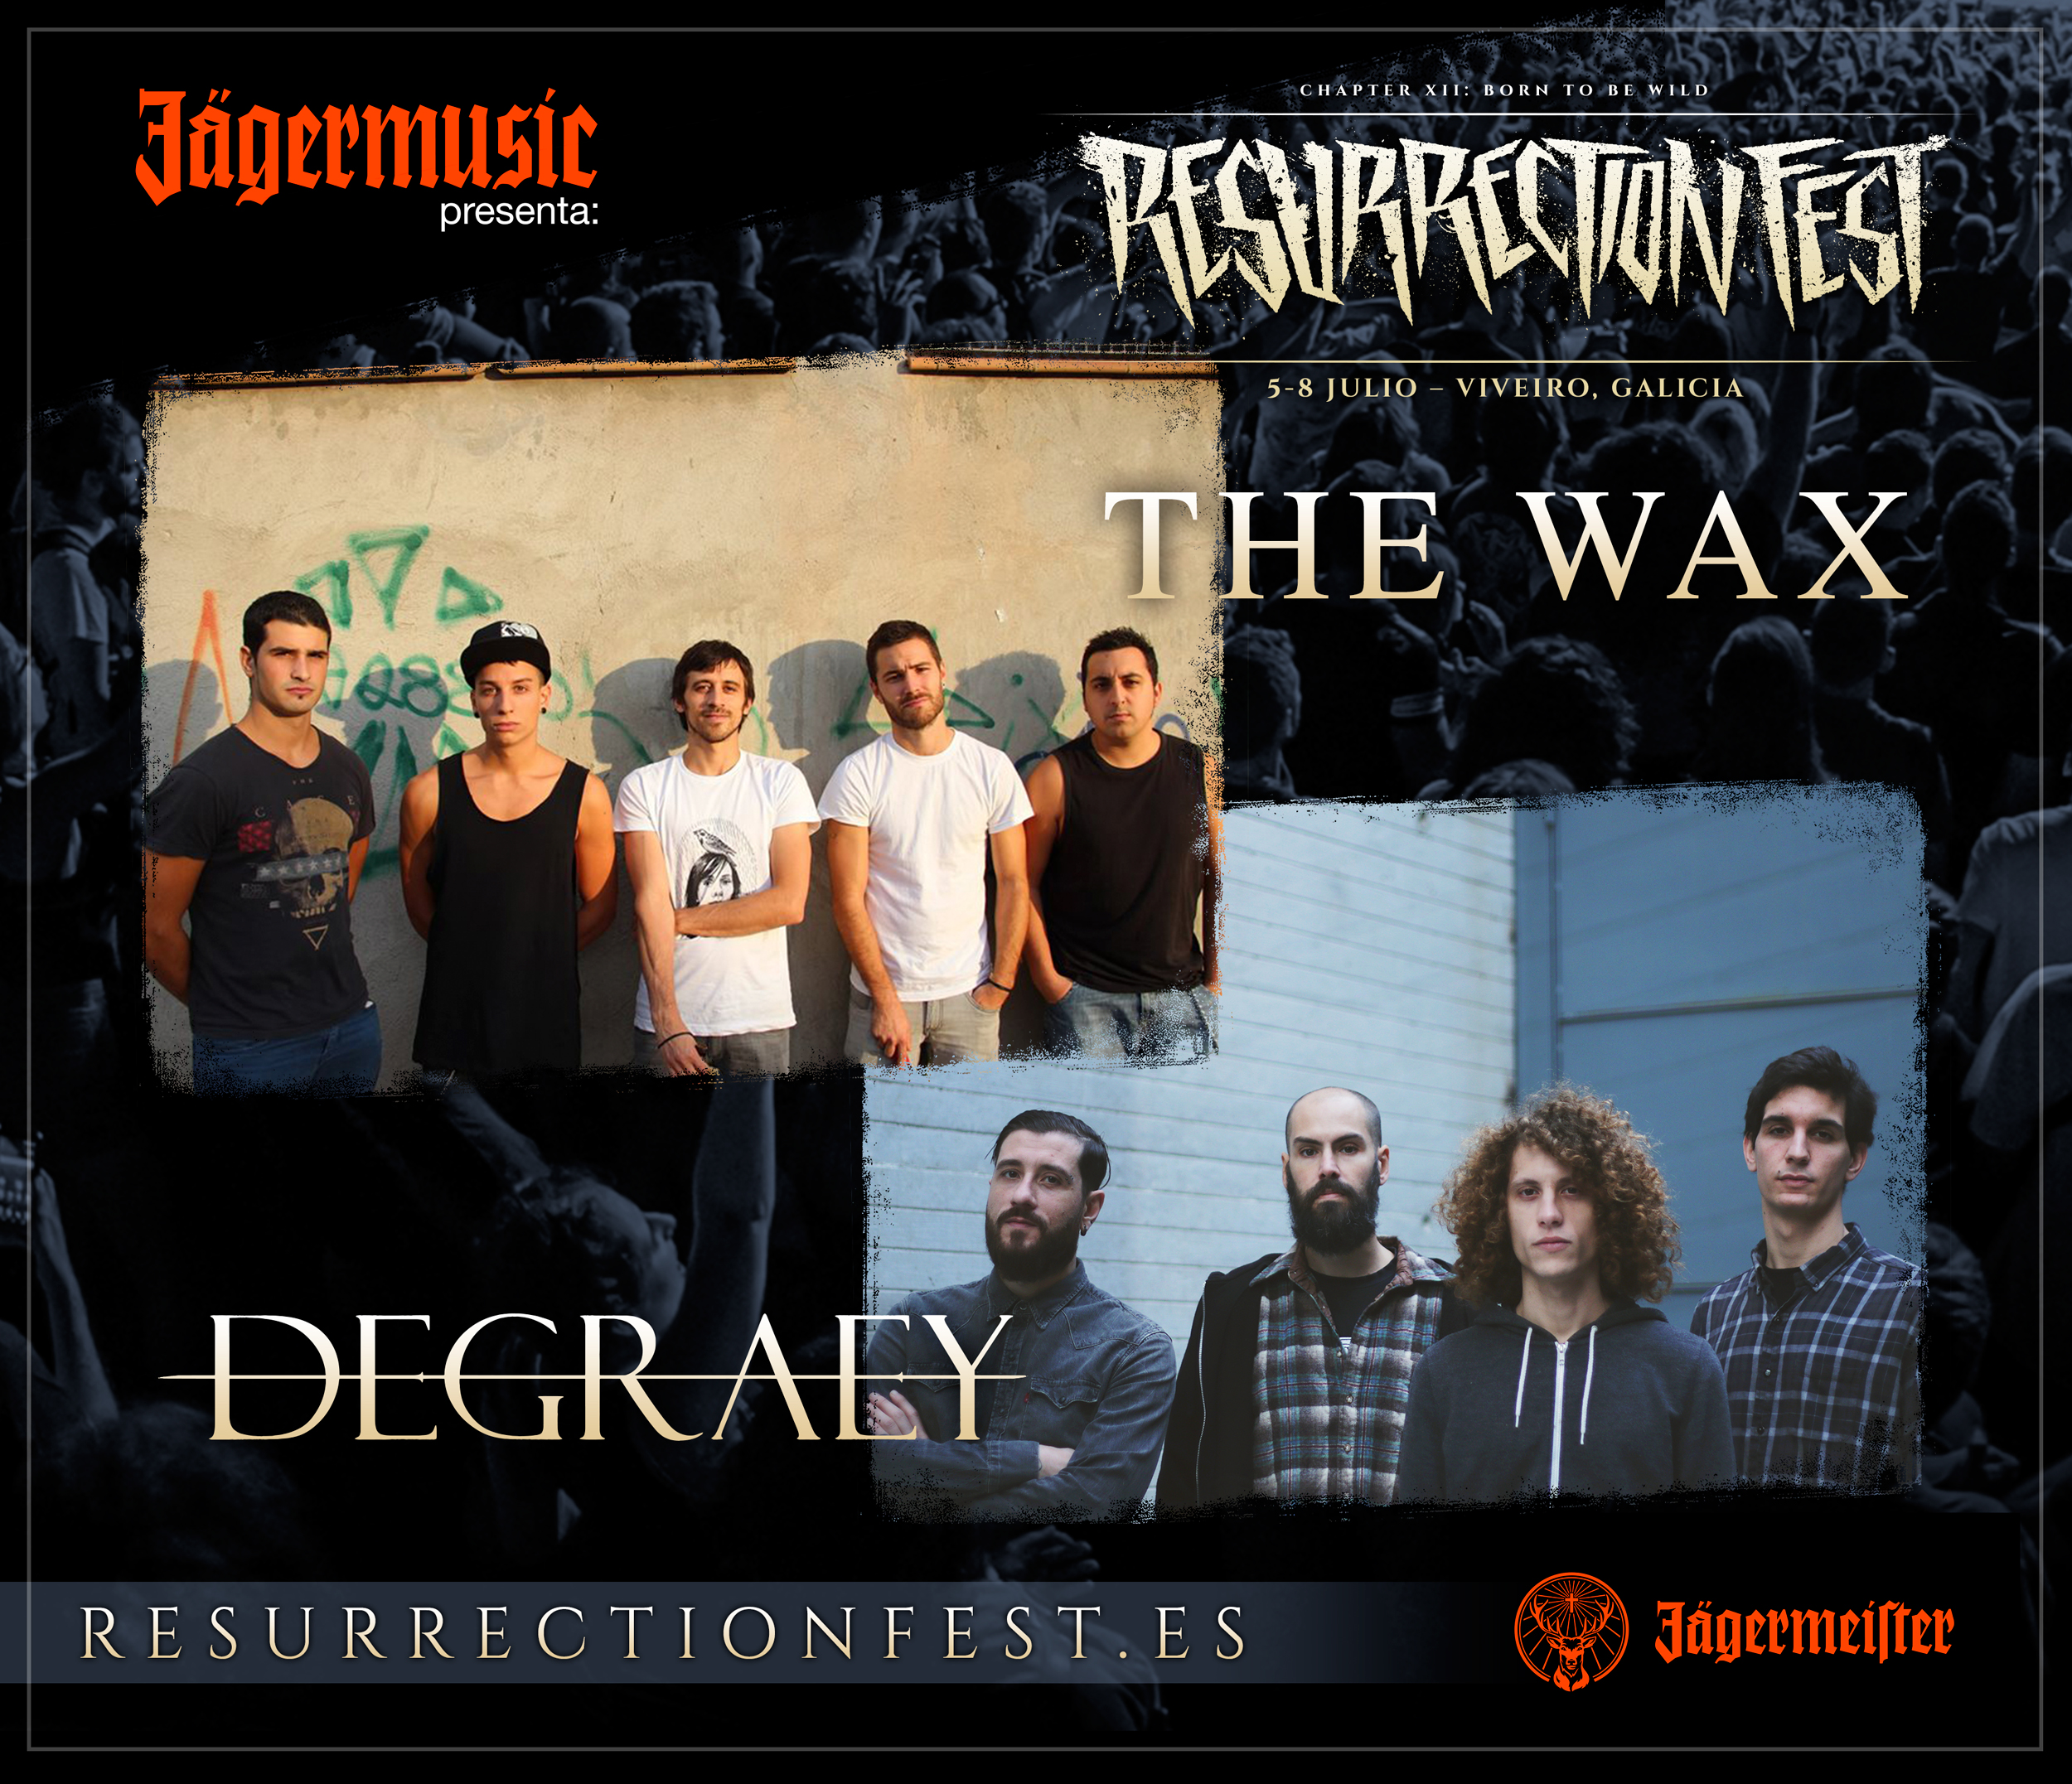 http://www.resurrectionfest.es/media/Resurrection-Fest-2017-Jagermusic-Degraey-The-Wax.jpg